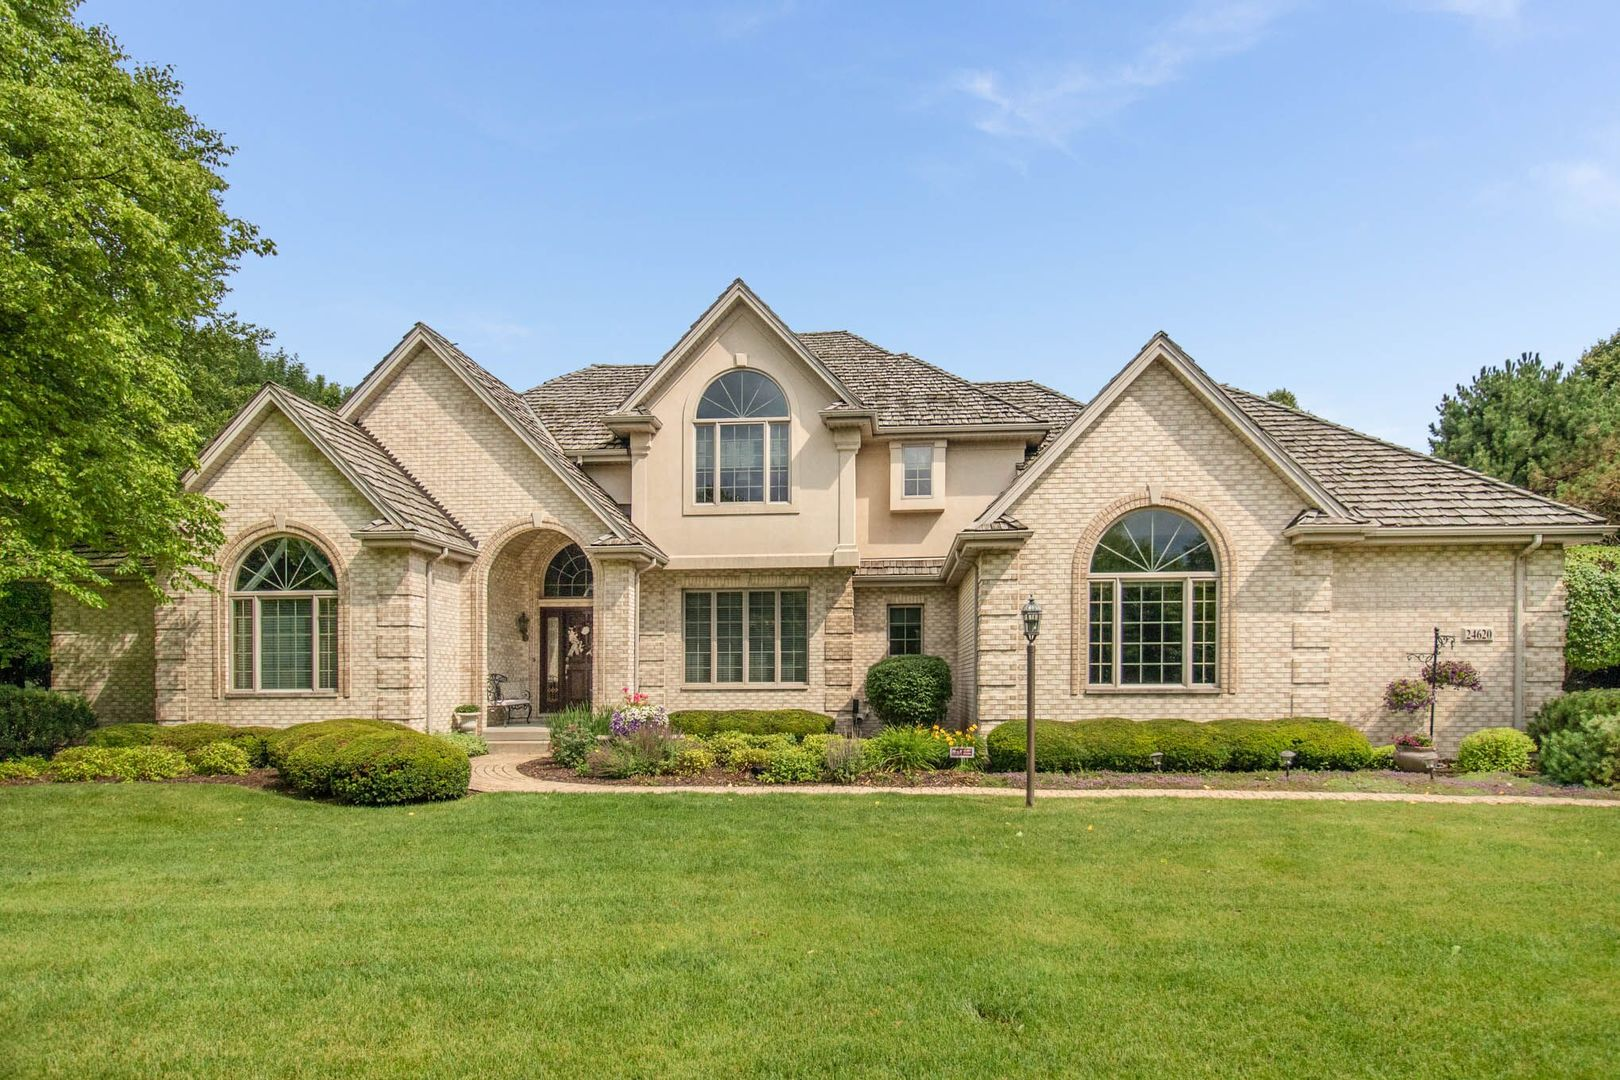 24620 West Manor Drive, Shorewood, Illinois